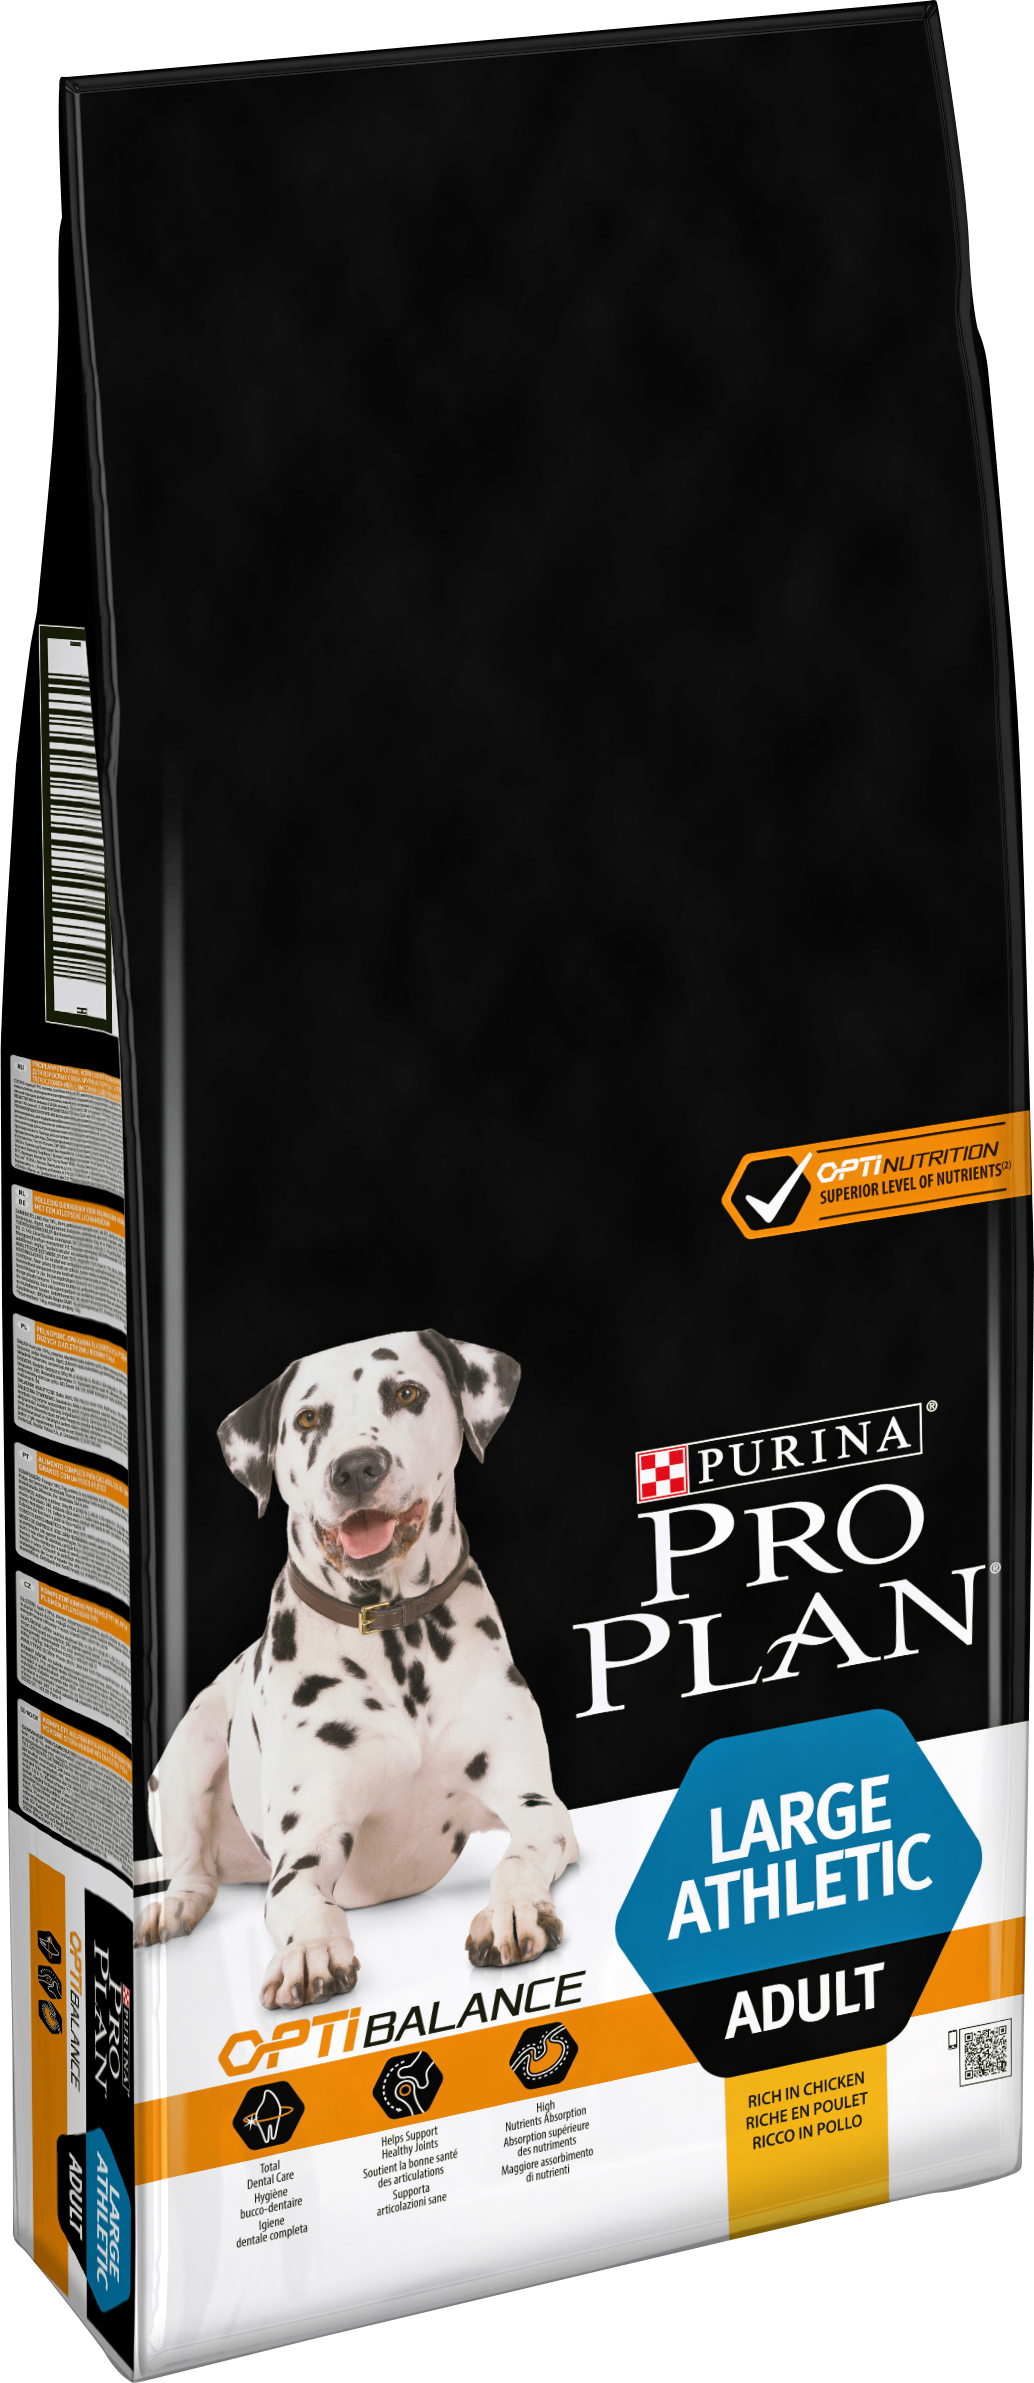 Hundfoder Pro Plan Large Adult Athletic, 14 kg